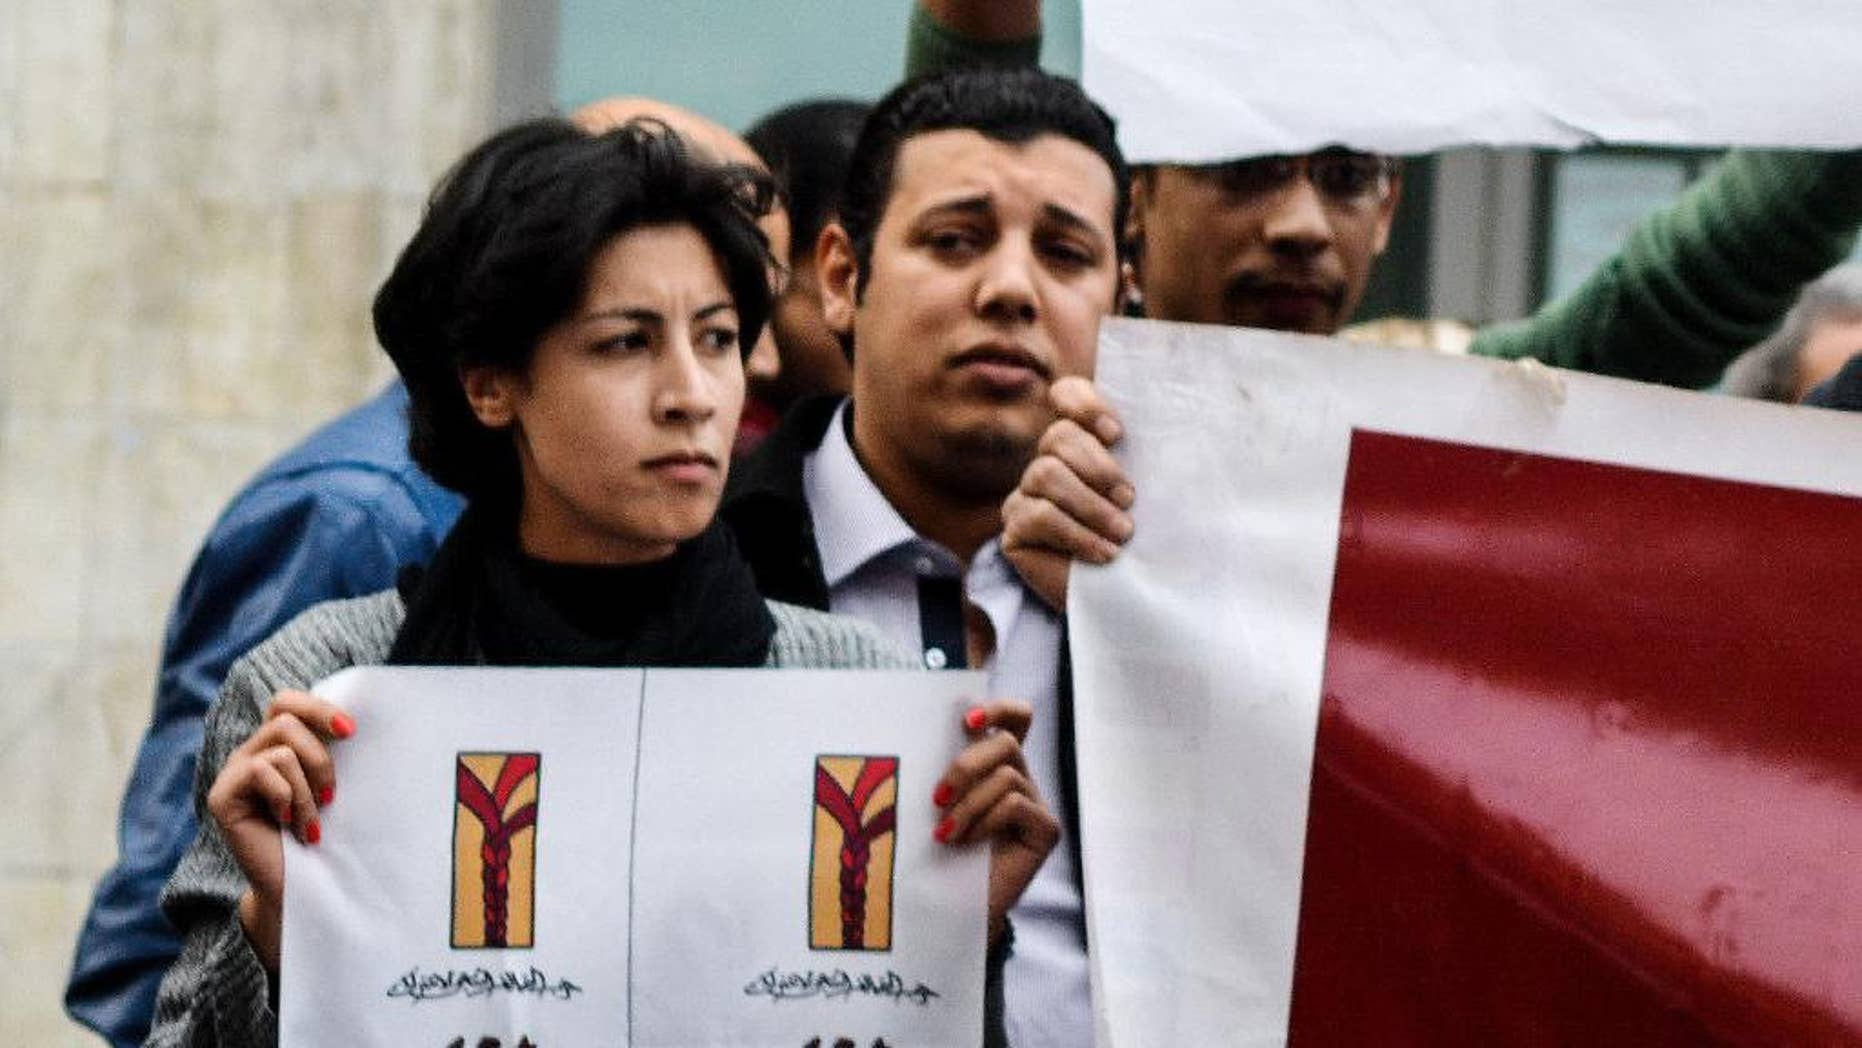 FILE - In this Jan. 24, 2015 photo, 32-year-old mother Shaimaa el-Sabbagh holds a poster during a protest in downtown Cairo. An Egyptian court acquitted 17 people on Saturday, May 23, 2015, over taking part in an unsanctioned demonstration earlier this year that saw a young mother shot to death in downtown Cairo. At least one of those affected by the court's decision is a witness to the killing of el-Sabbagh, an unarmed protester taking part in a peaceful demonstration. (AP Photo/Mohammed El-Raaei, File)